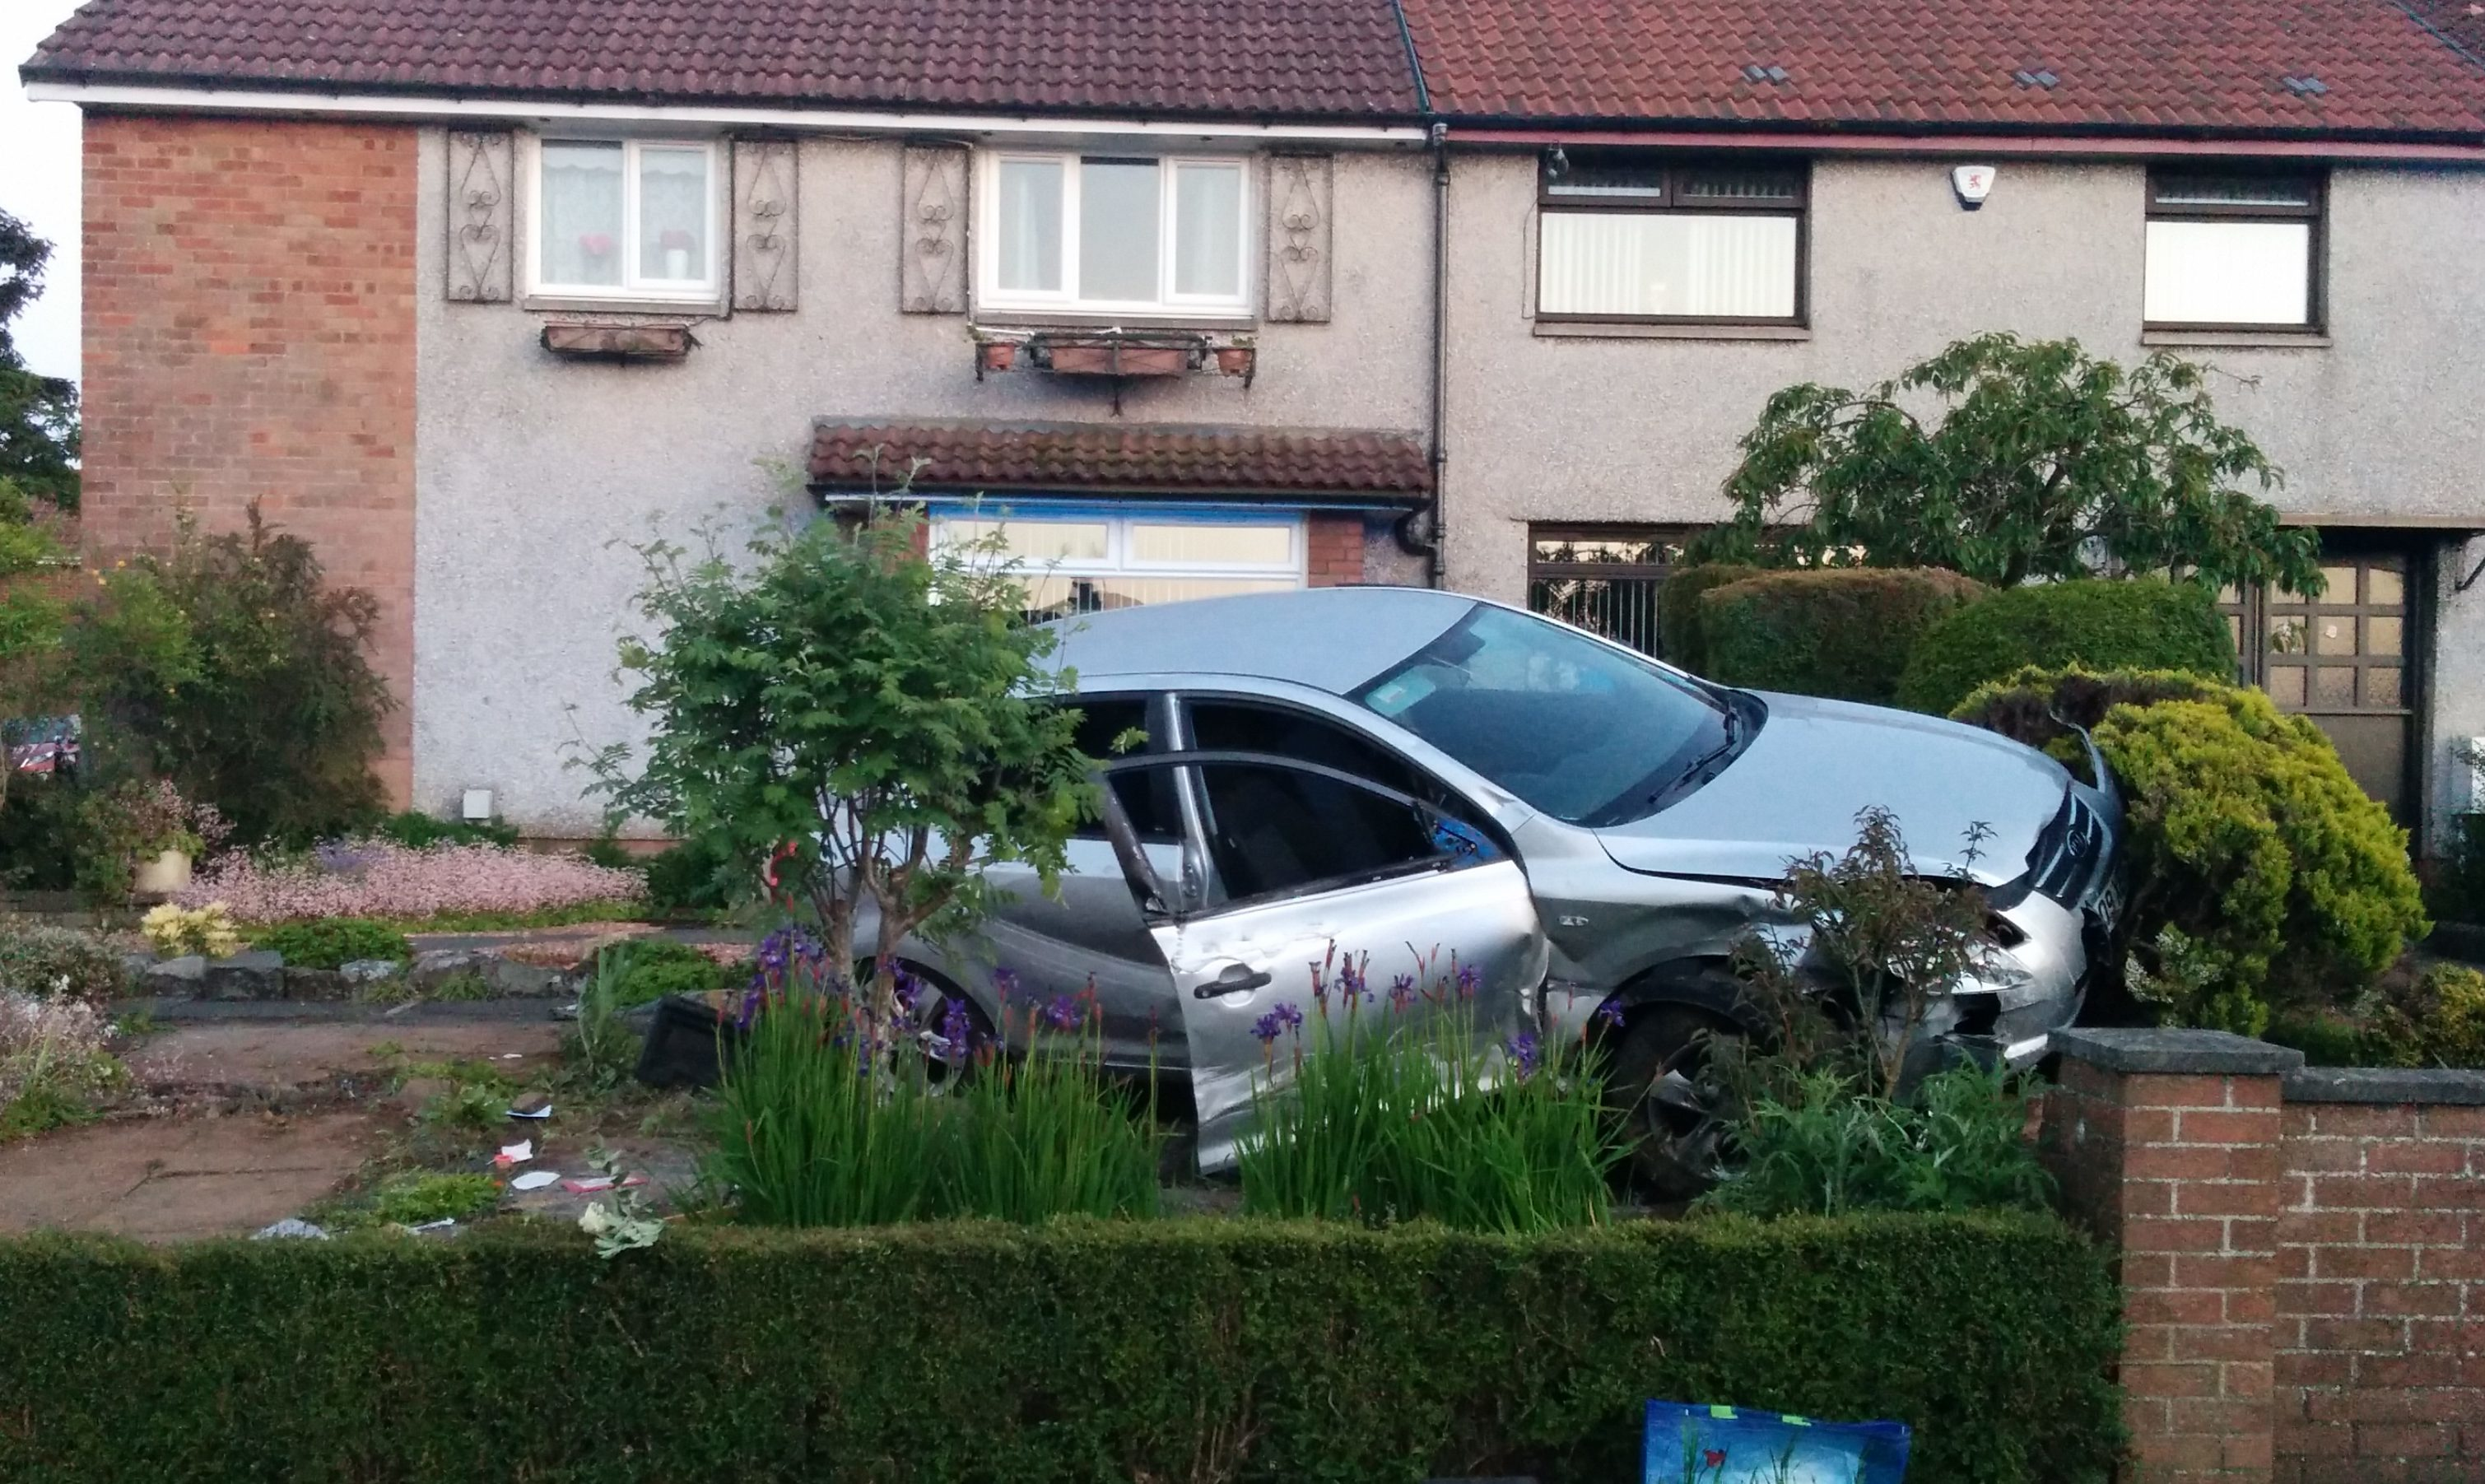 The car driven by Gordon Suttie overturned and crashed into a garden.